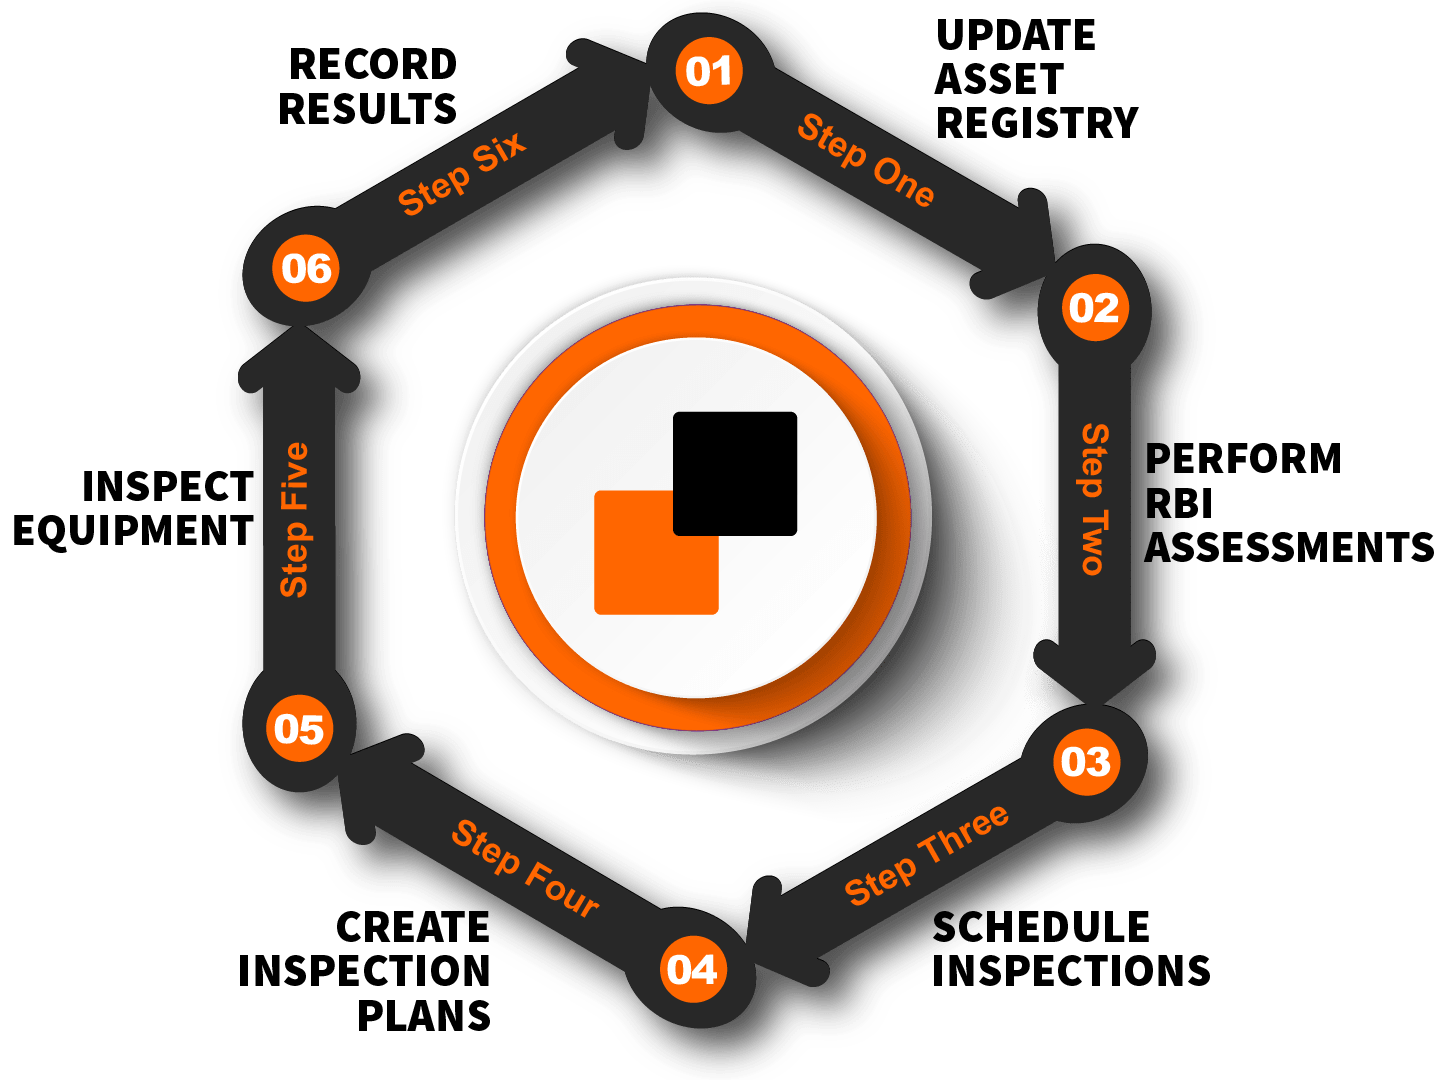 Work Process. Step 1 - Asset registry. Step 2 - Perform RBI assesments. Step 3 - Schedule inspections. Step 4 - Create inspection plans. Step 5 - Inspect equipment. Step 6 - Record results. Step 7 - Update asset registry.